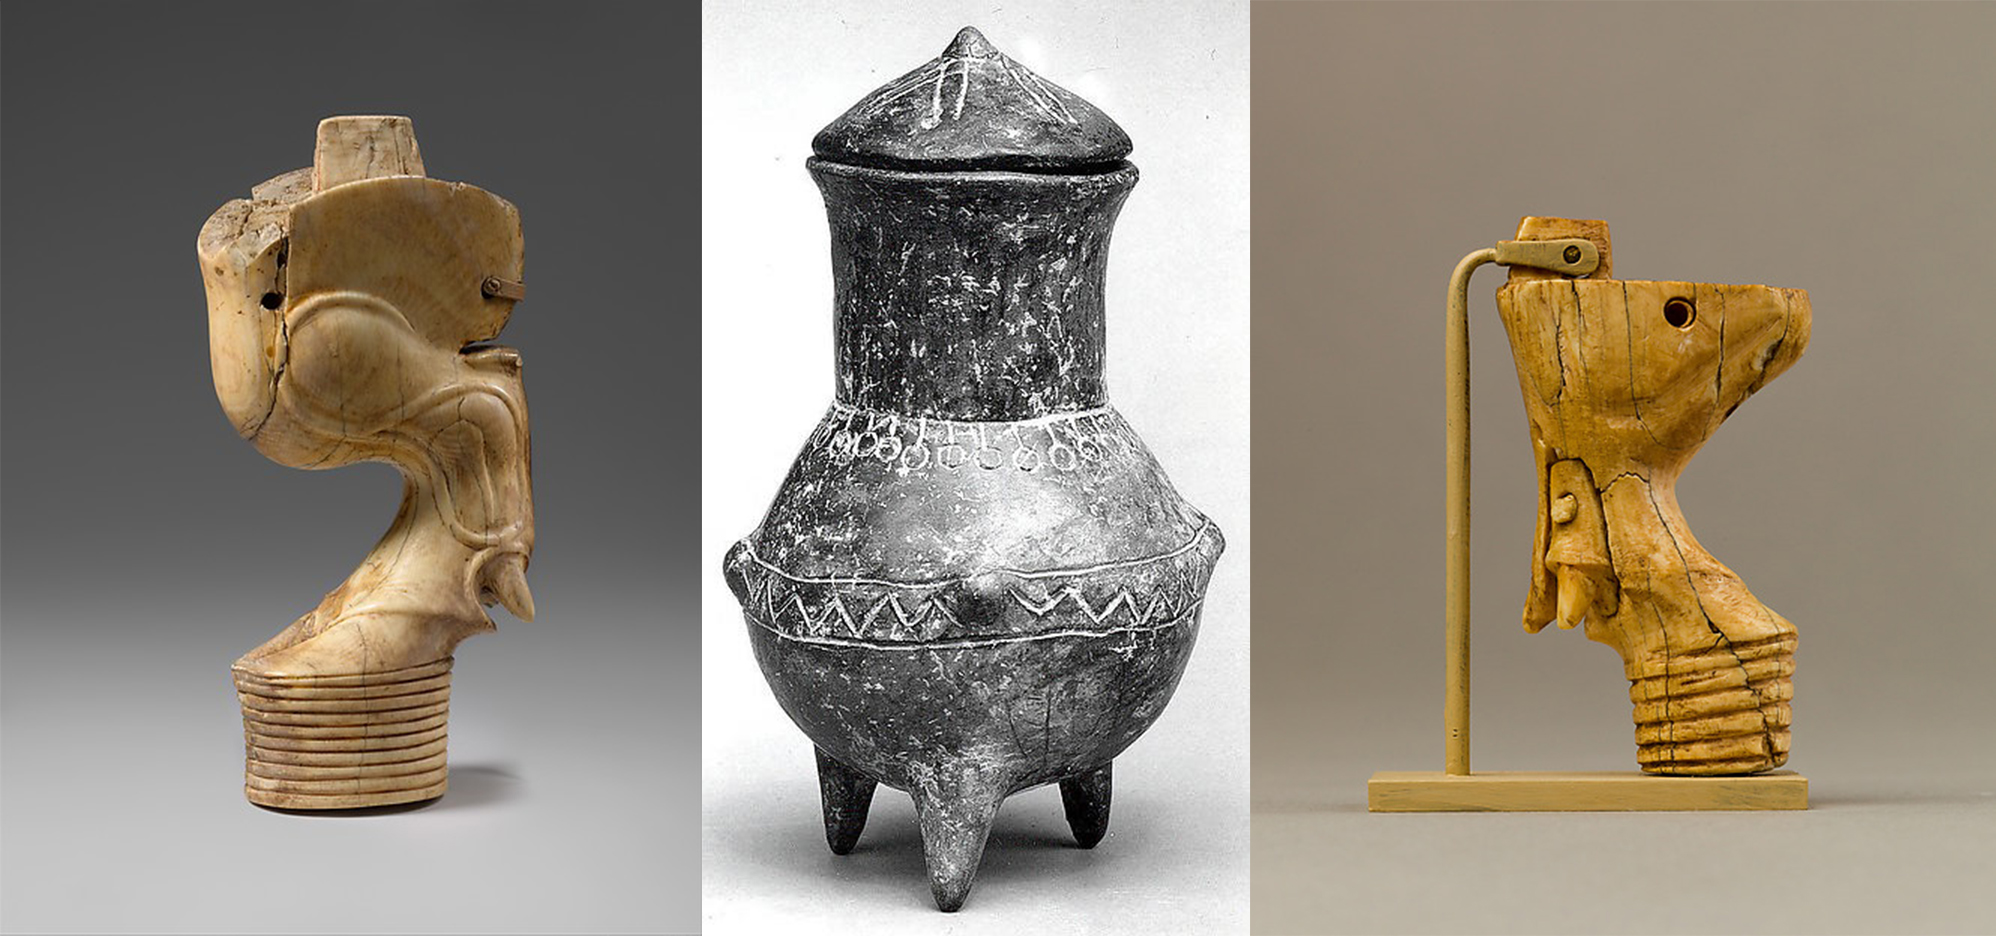 Early Dynastic Period furniture and homewares, ca. 3100-2900 BC